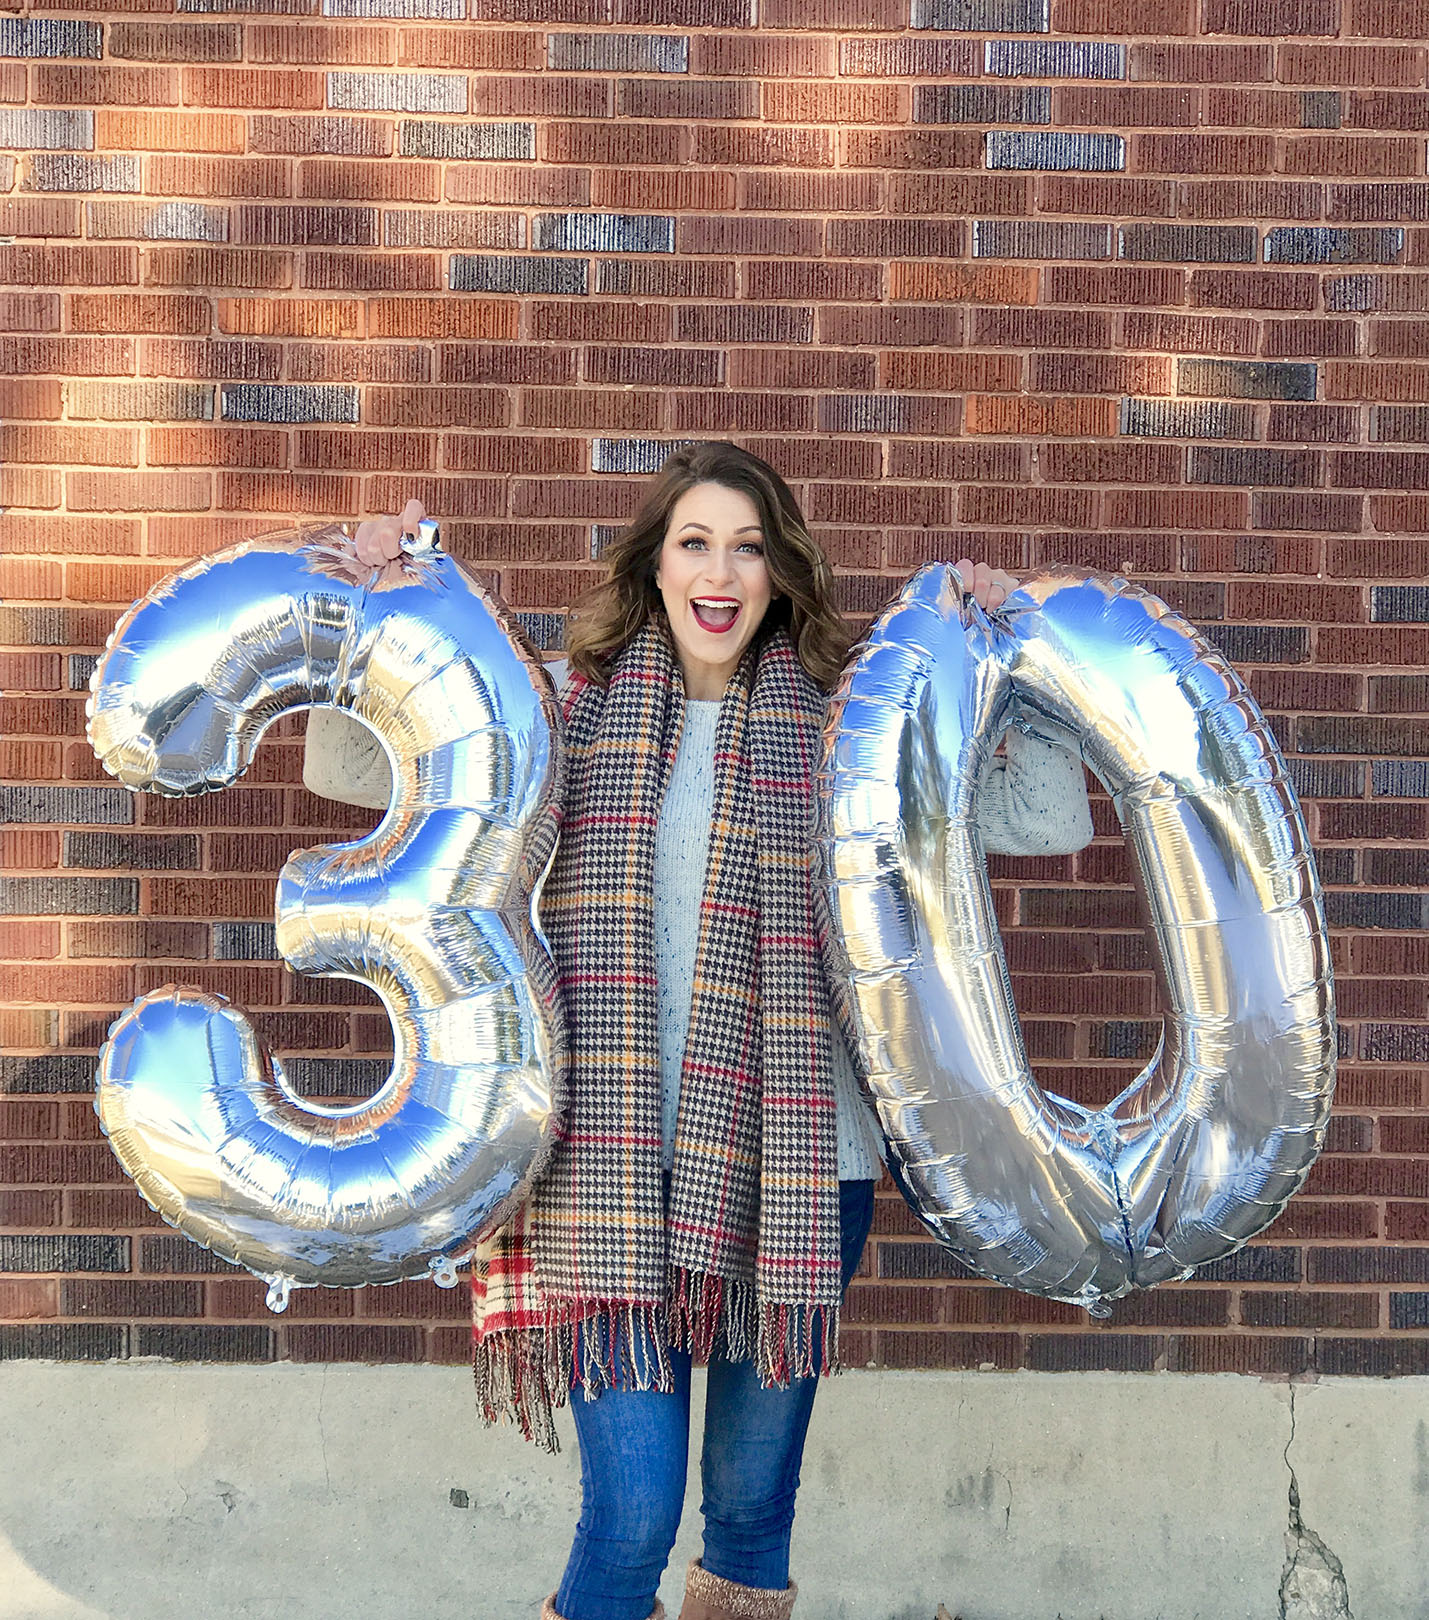 I'm 30 _Ashley YAY